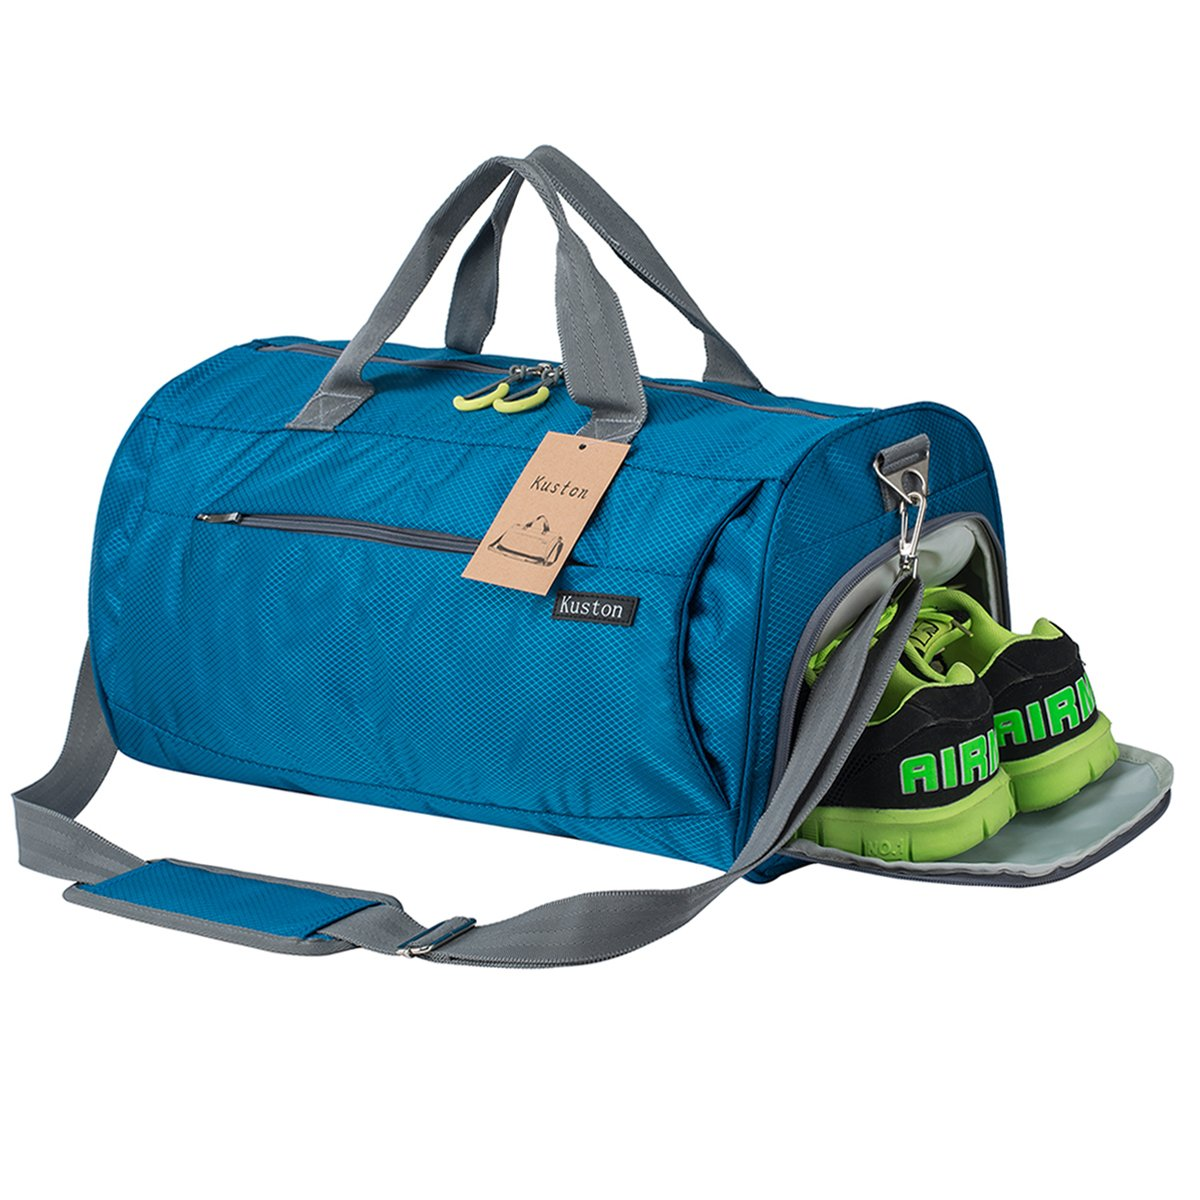 Kuston Sports Gym Bag with Shoes Compartment Travel Duffel Bag for Men and Women (sky blue)